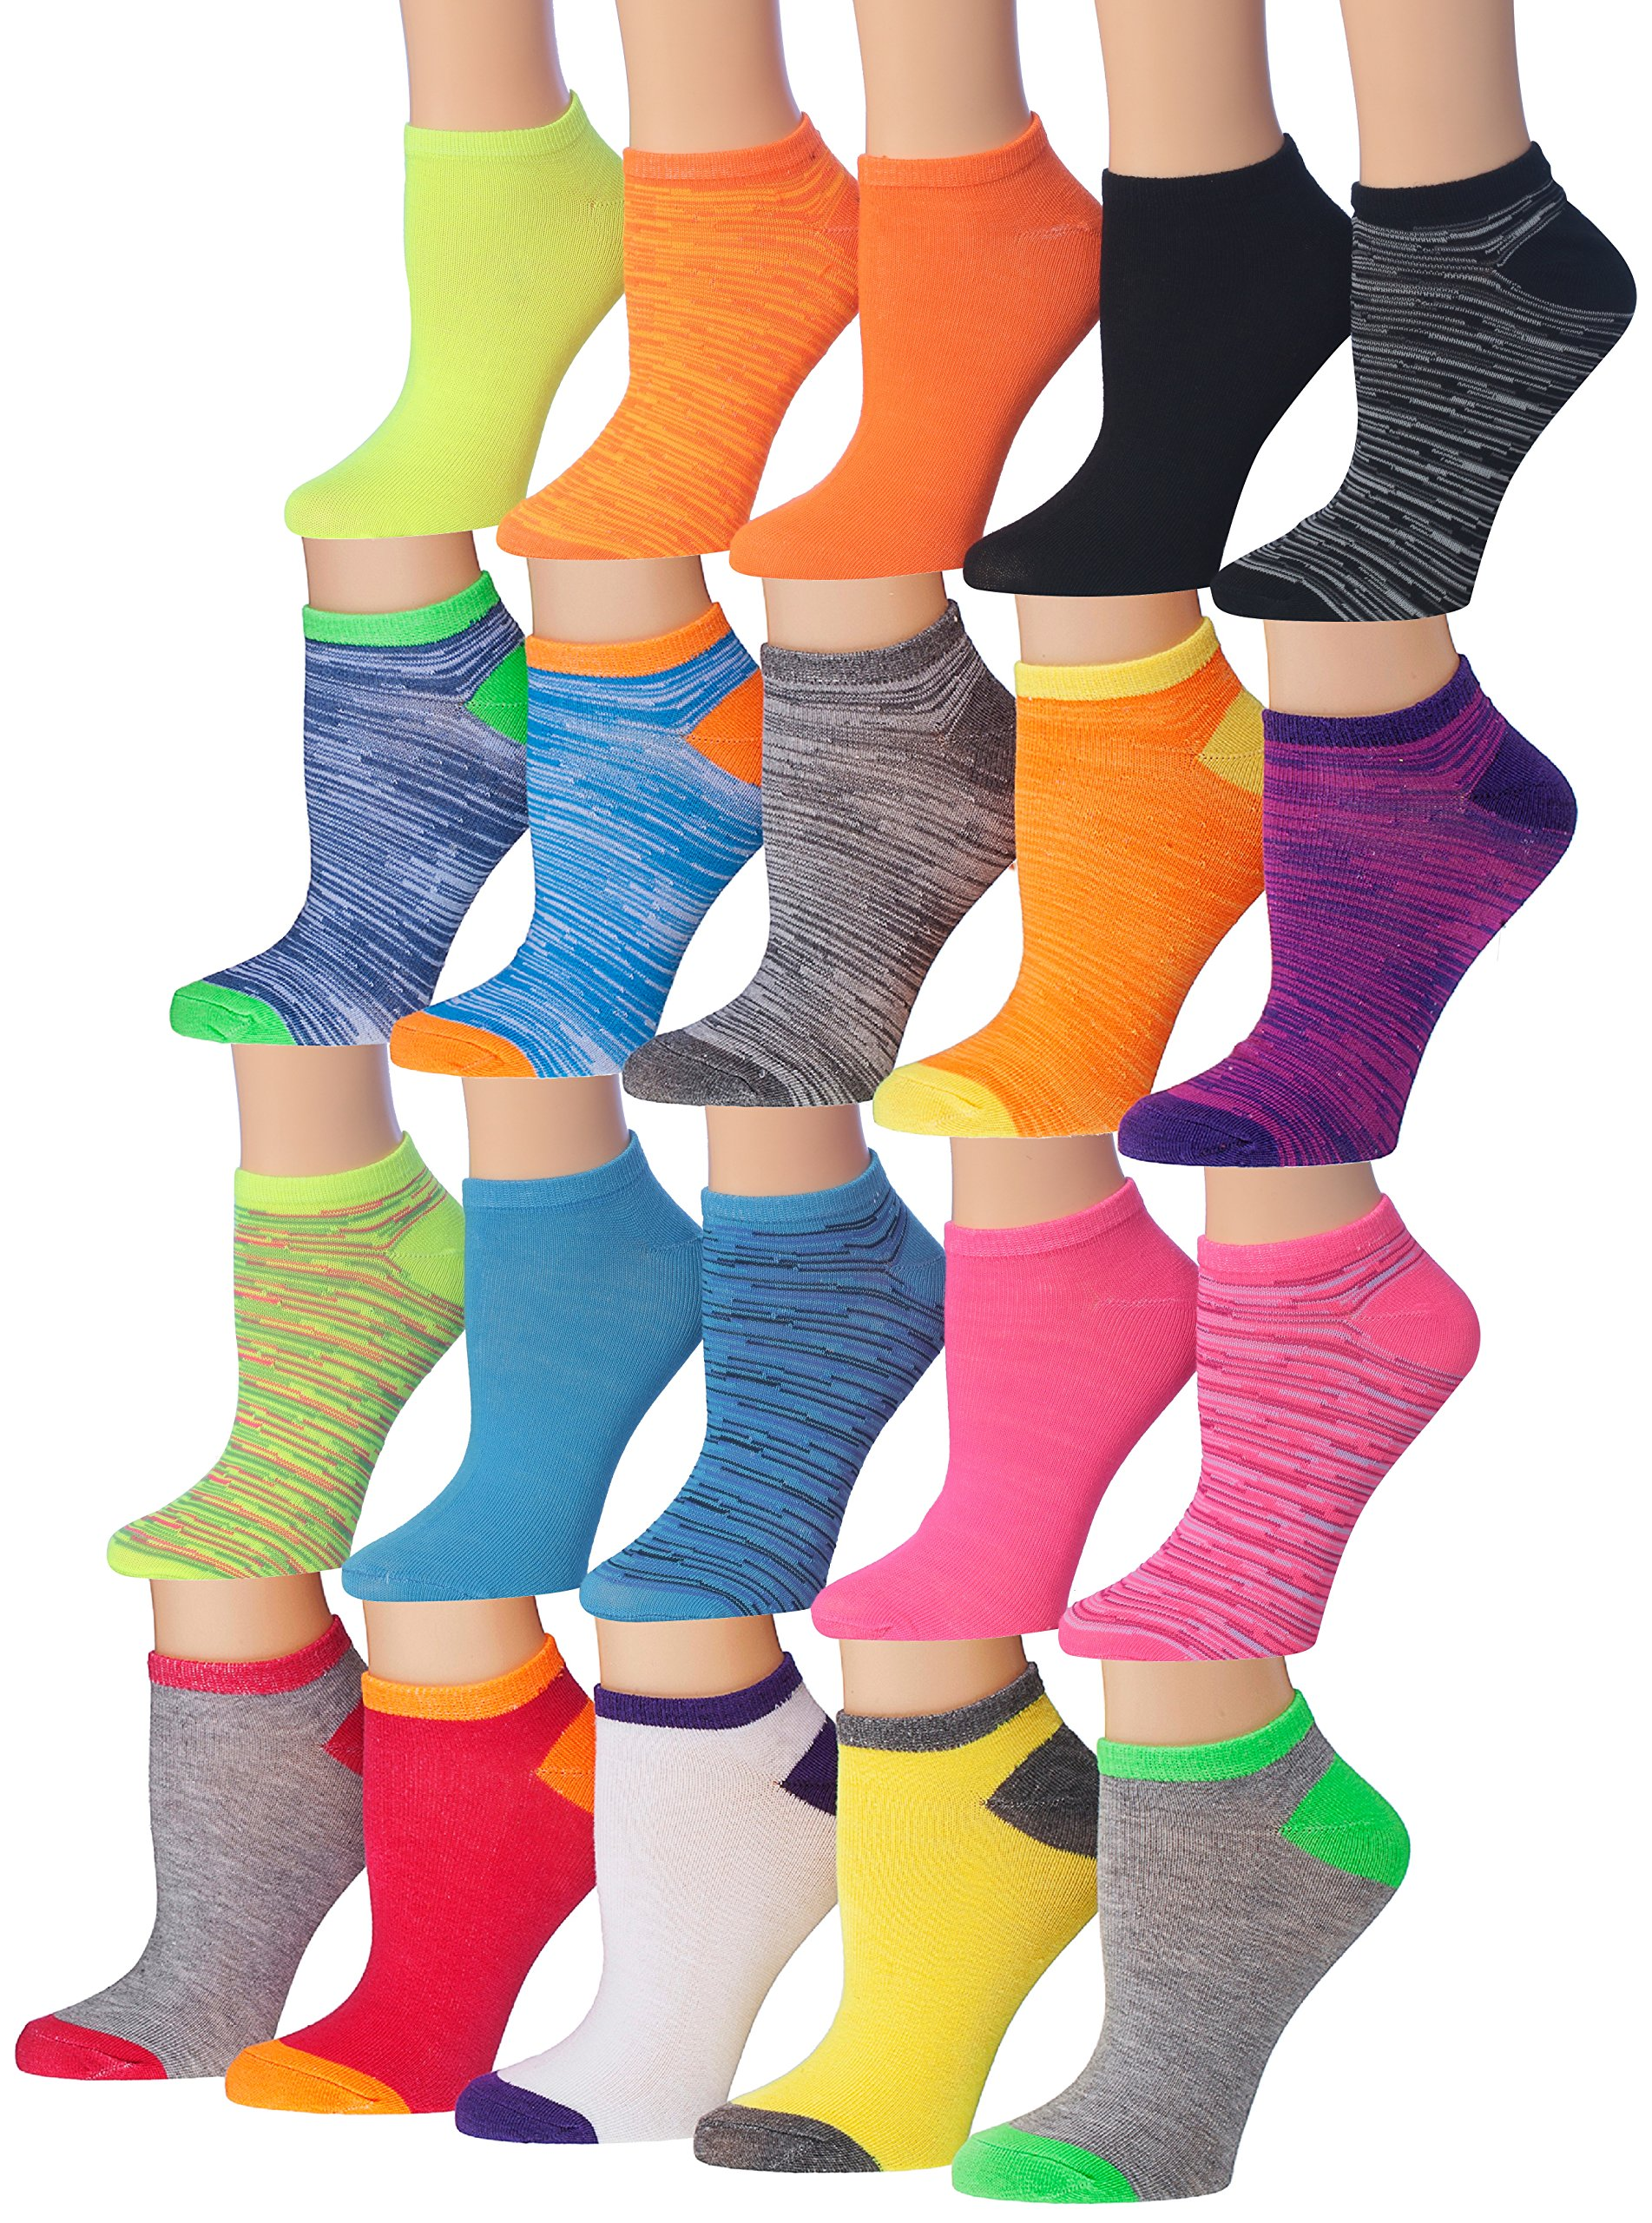 Tipi Toe Women's 20 Pairs Colorful Patterned Low Cut / No Show Socks, (sock size9-11) Fits shoe size 6-12, WL07-AB